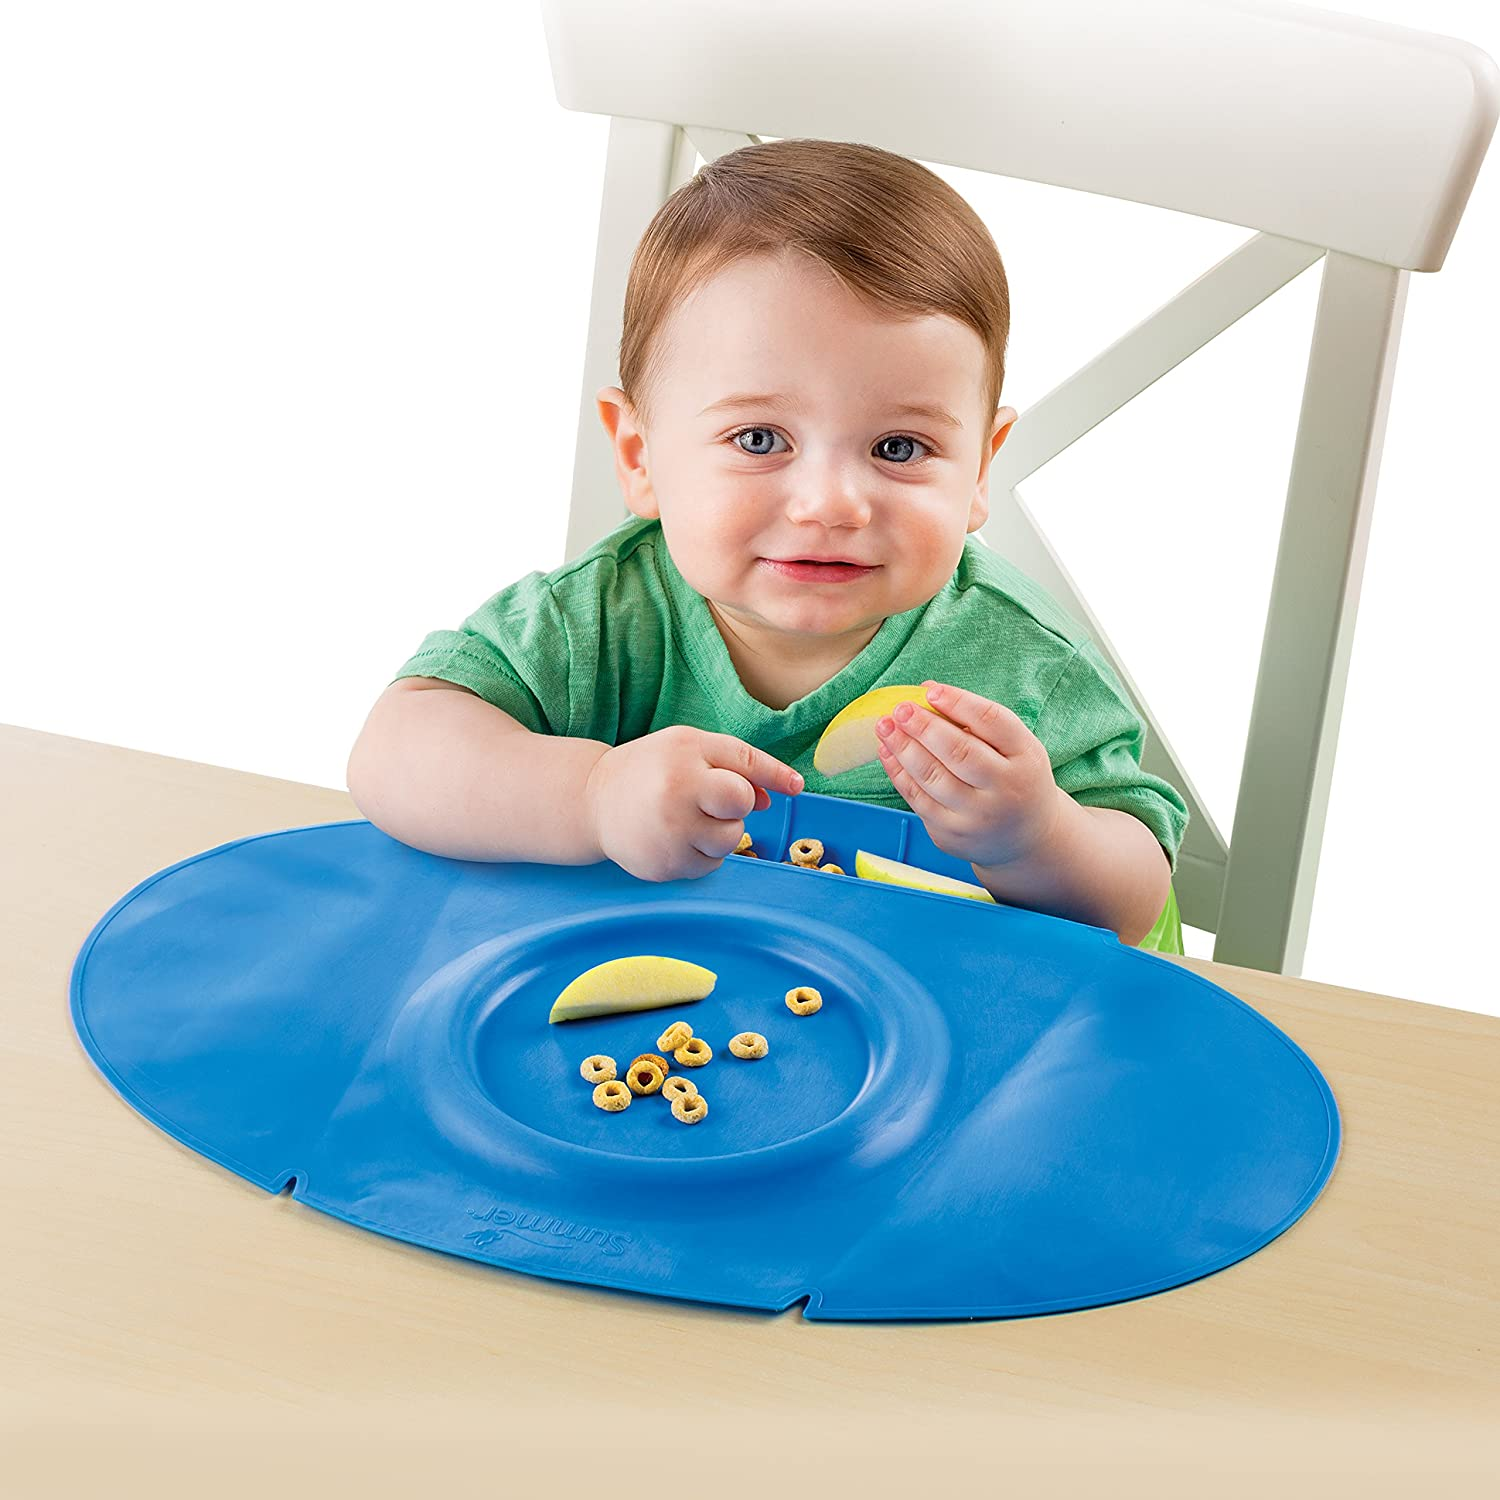 Amazon.com : Summer Infant Tiny Diner 2 Portable Placemat, Blue : Baby